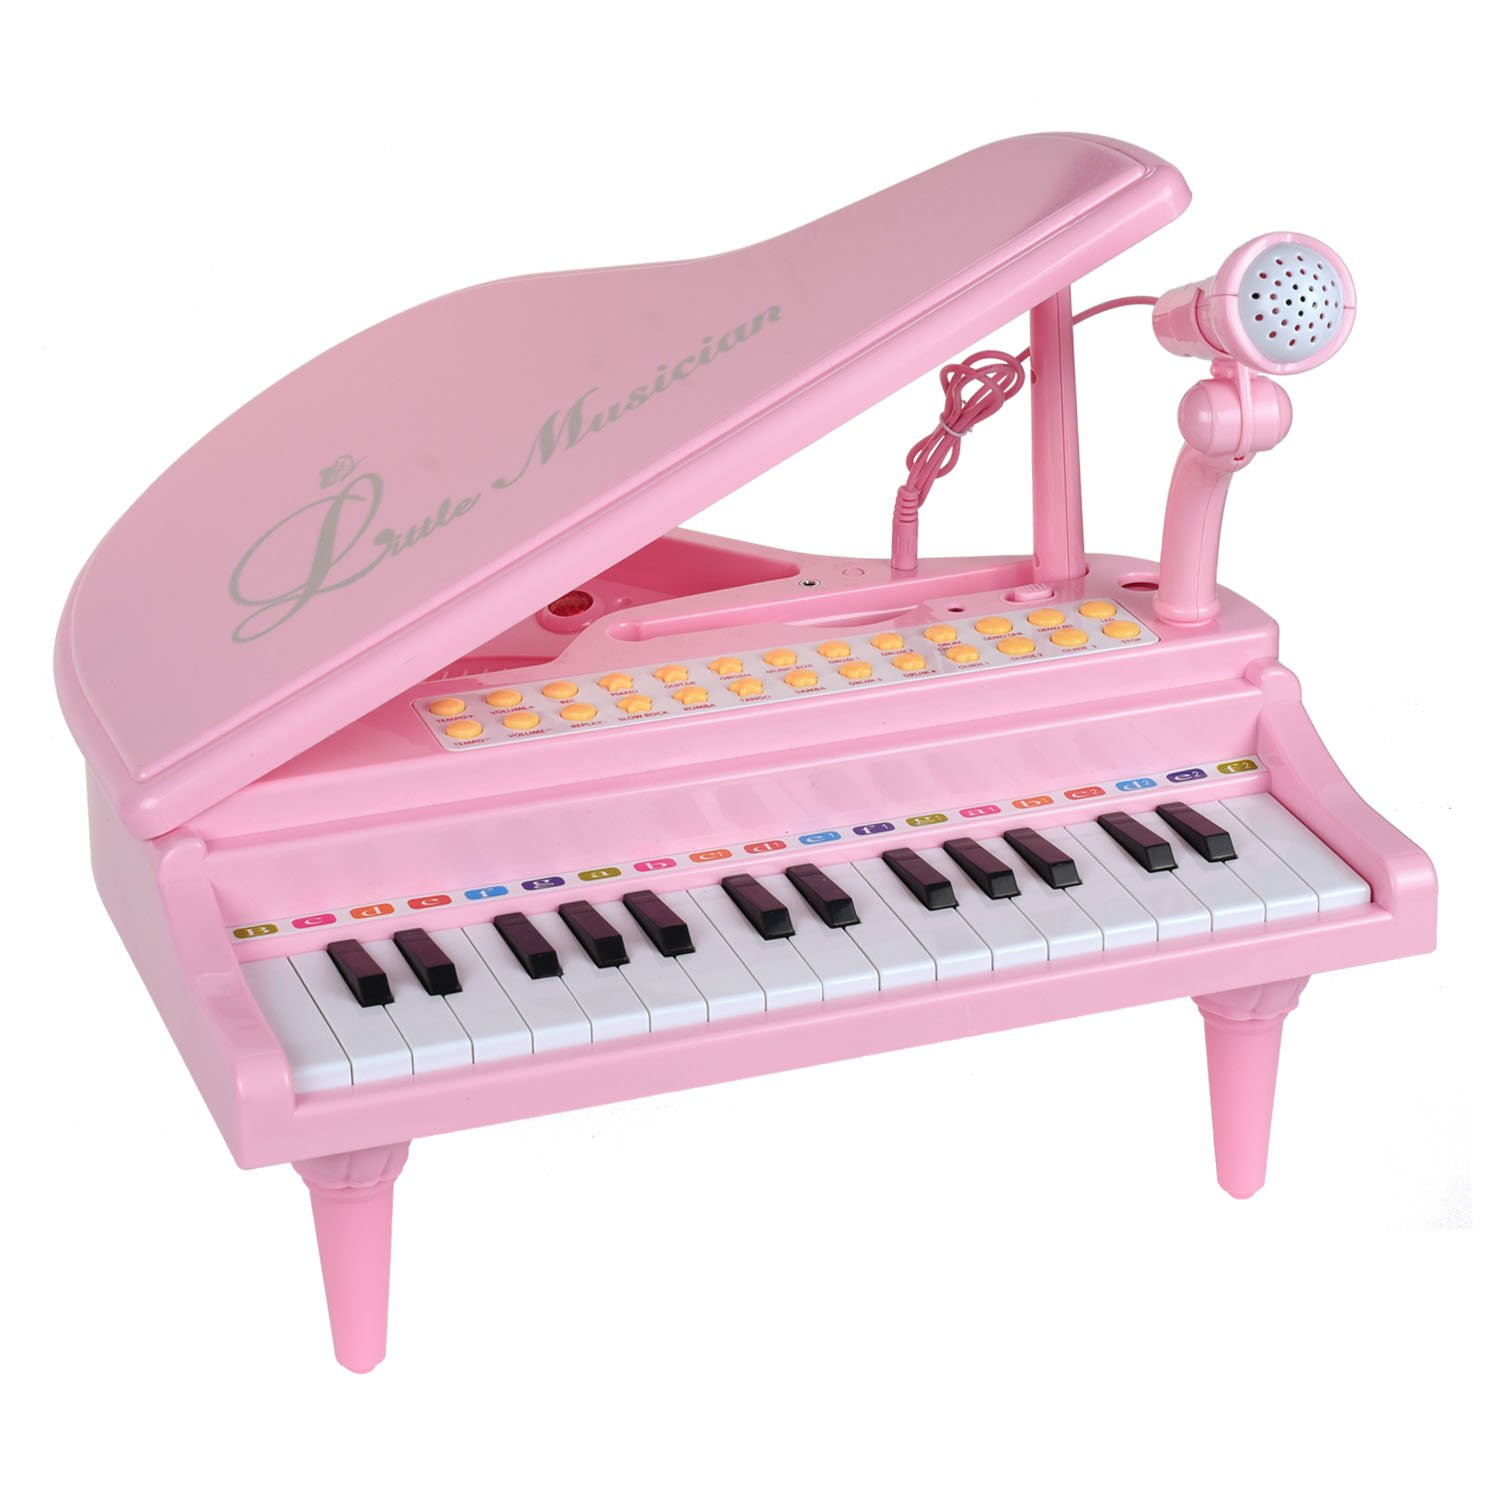 BAOLI 31 Keys Little Pink Piano for Girls with Microphone Electronic Organ Music Keyboard for Kids